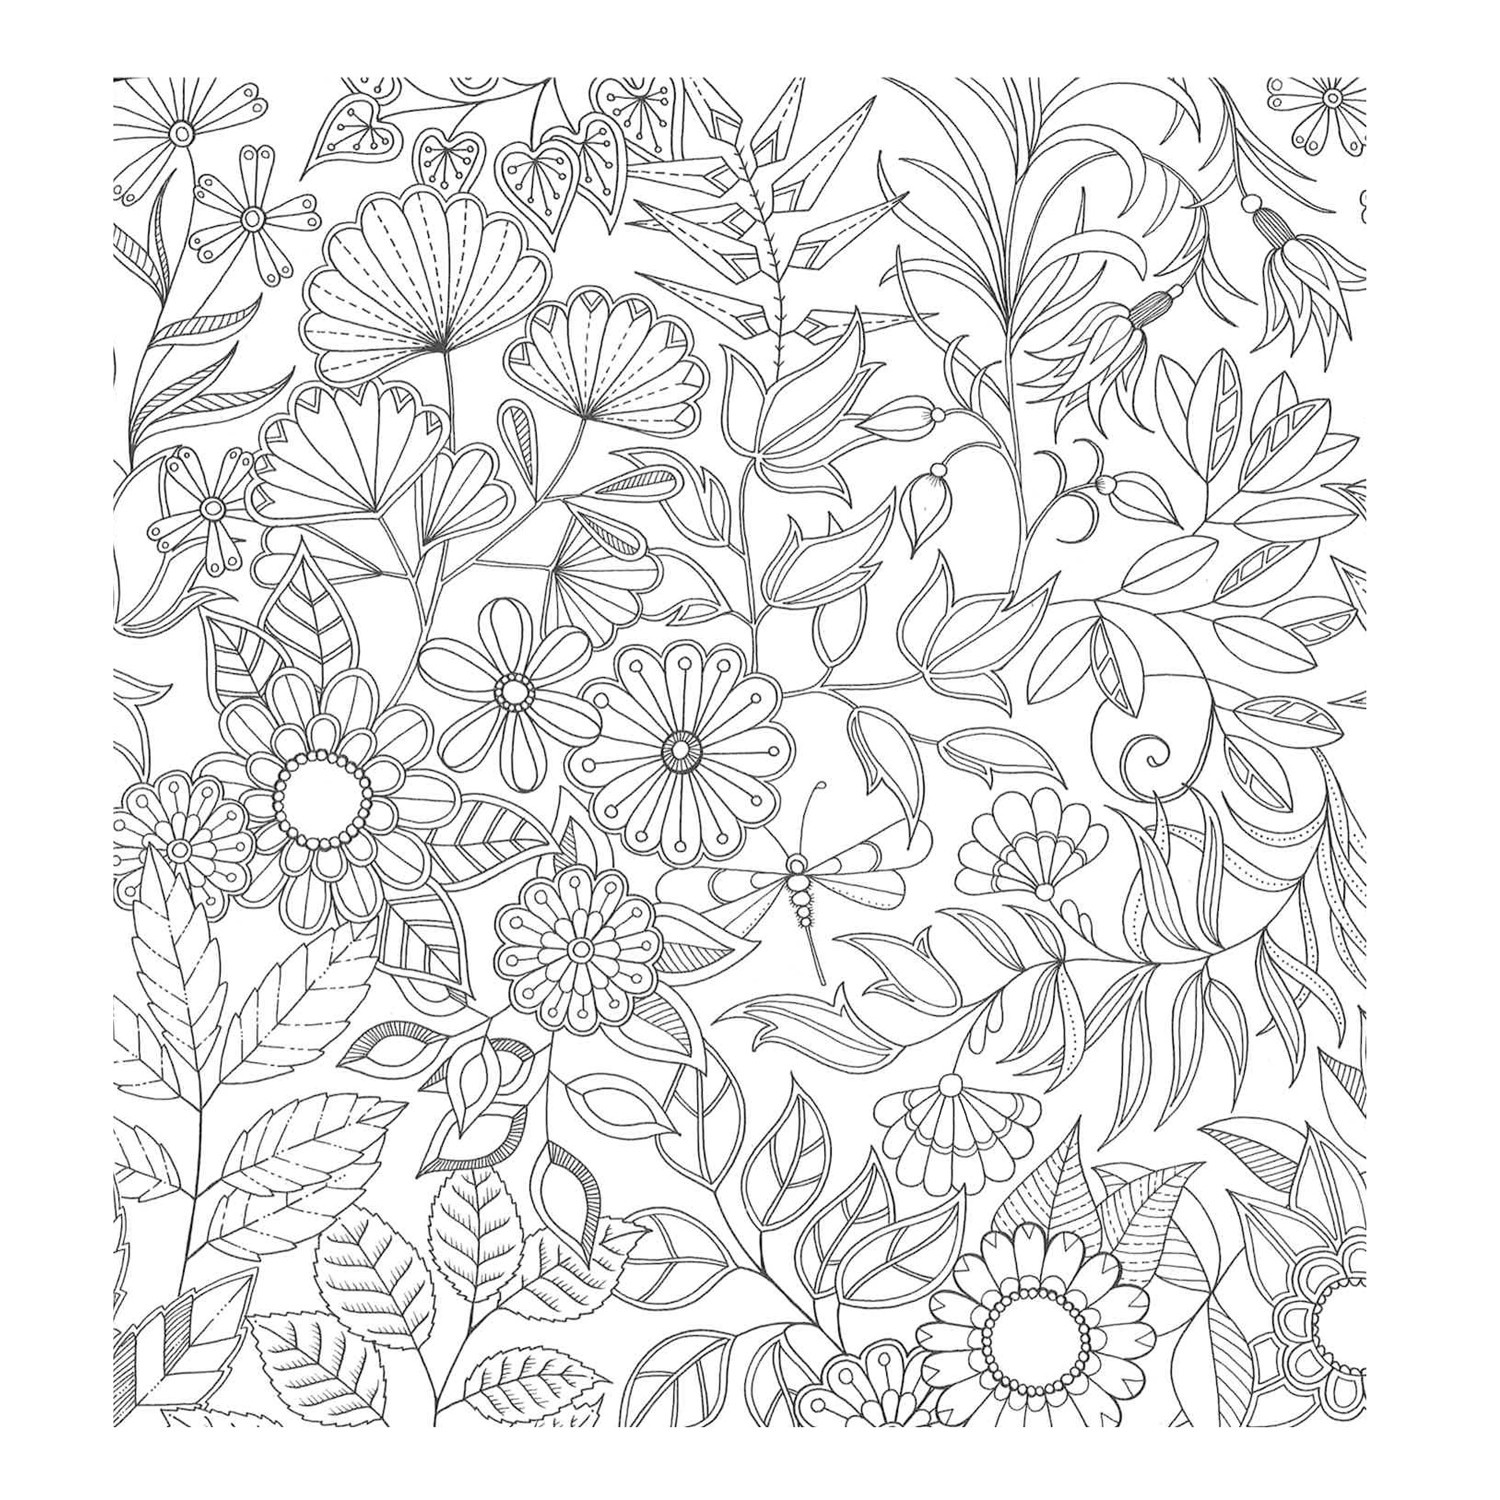 1500x1500 Adult Coloring Pages Secret Garden Collection Coloring Sheets